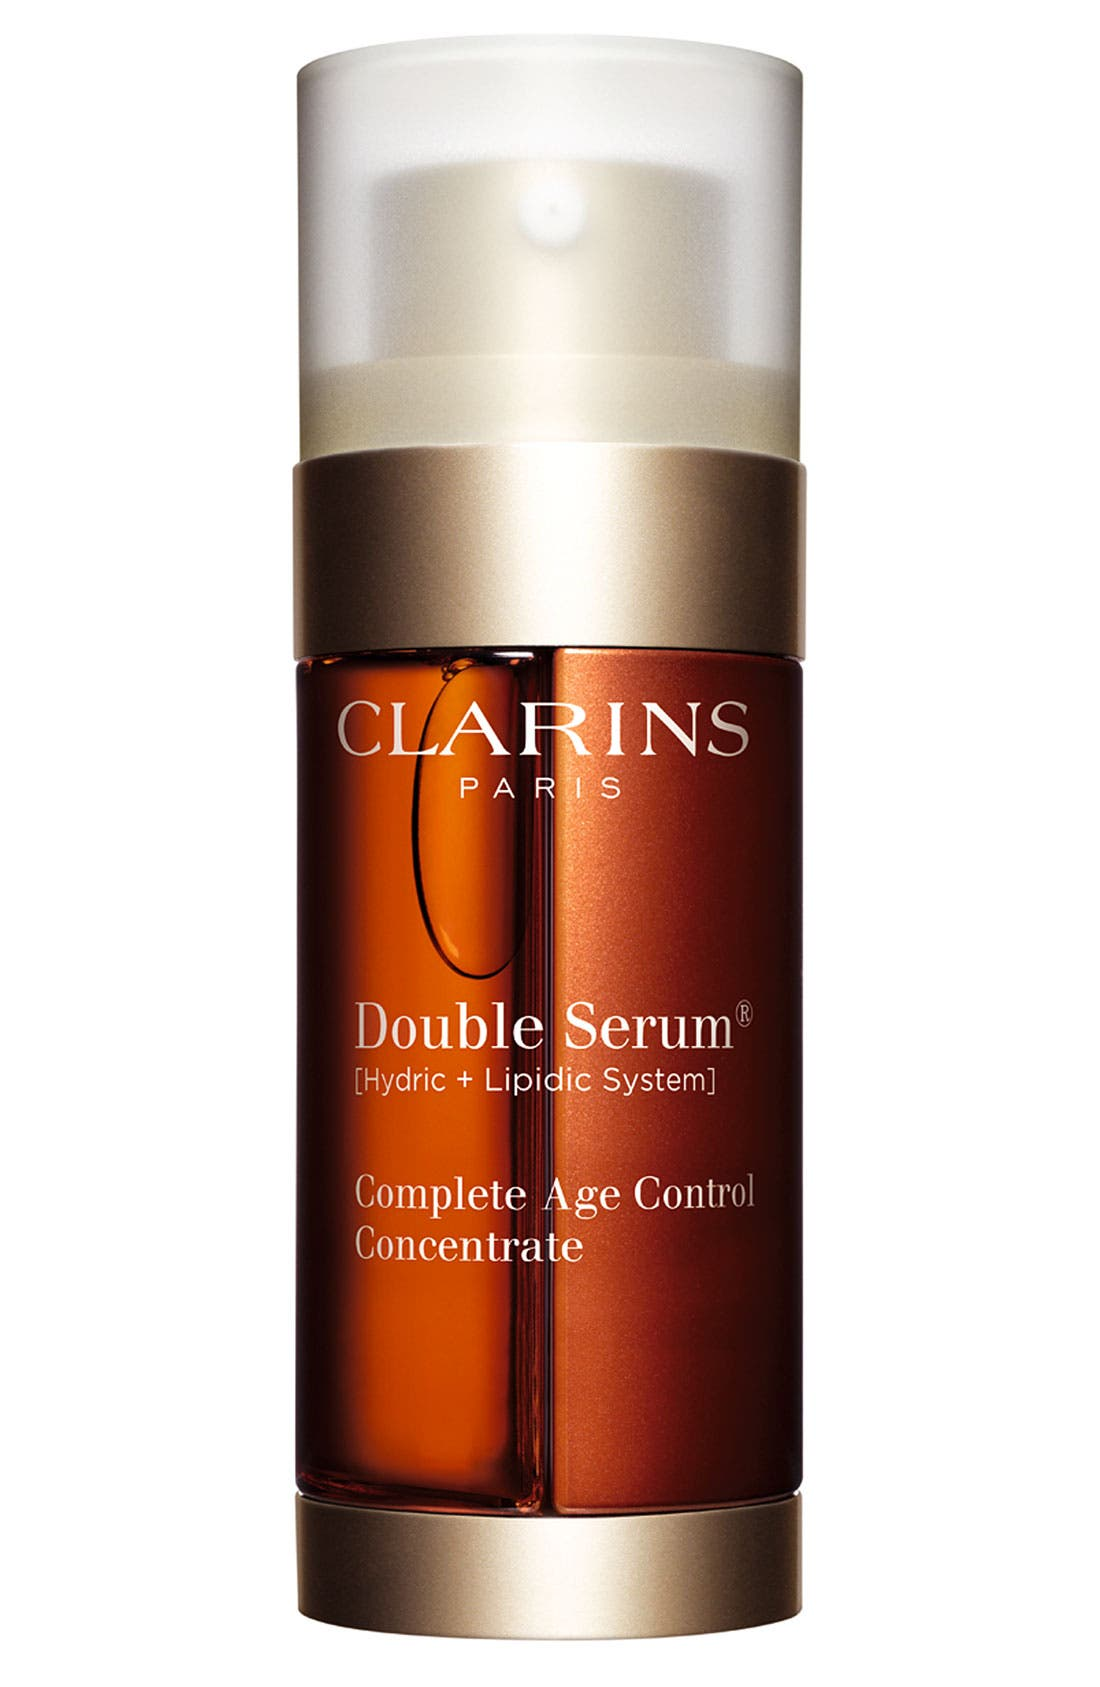 Clarins 'Double Serum®' Complete Age Control Concentrate